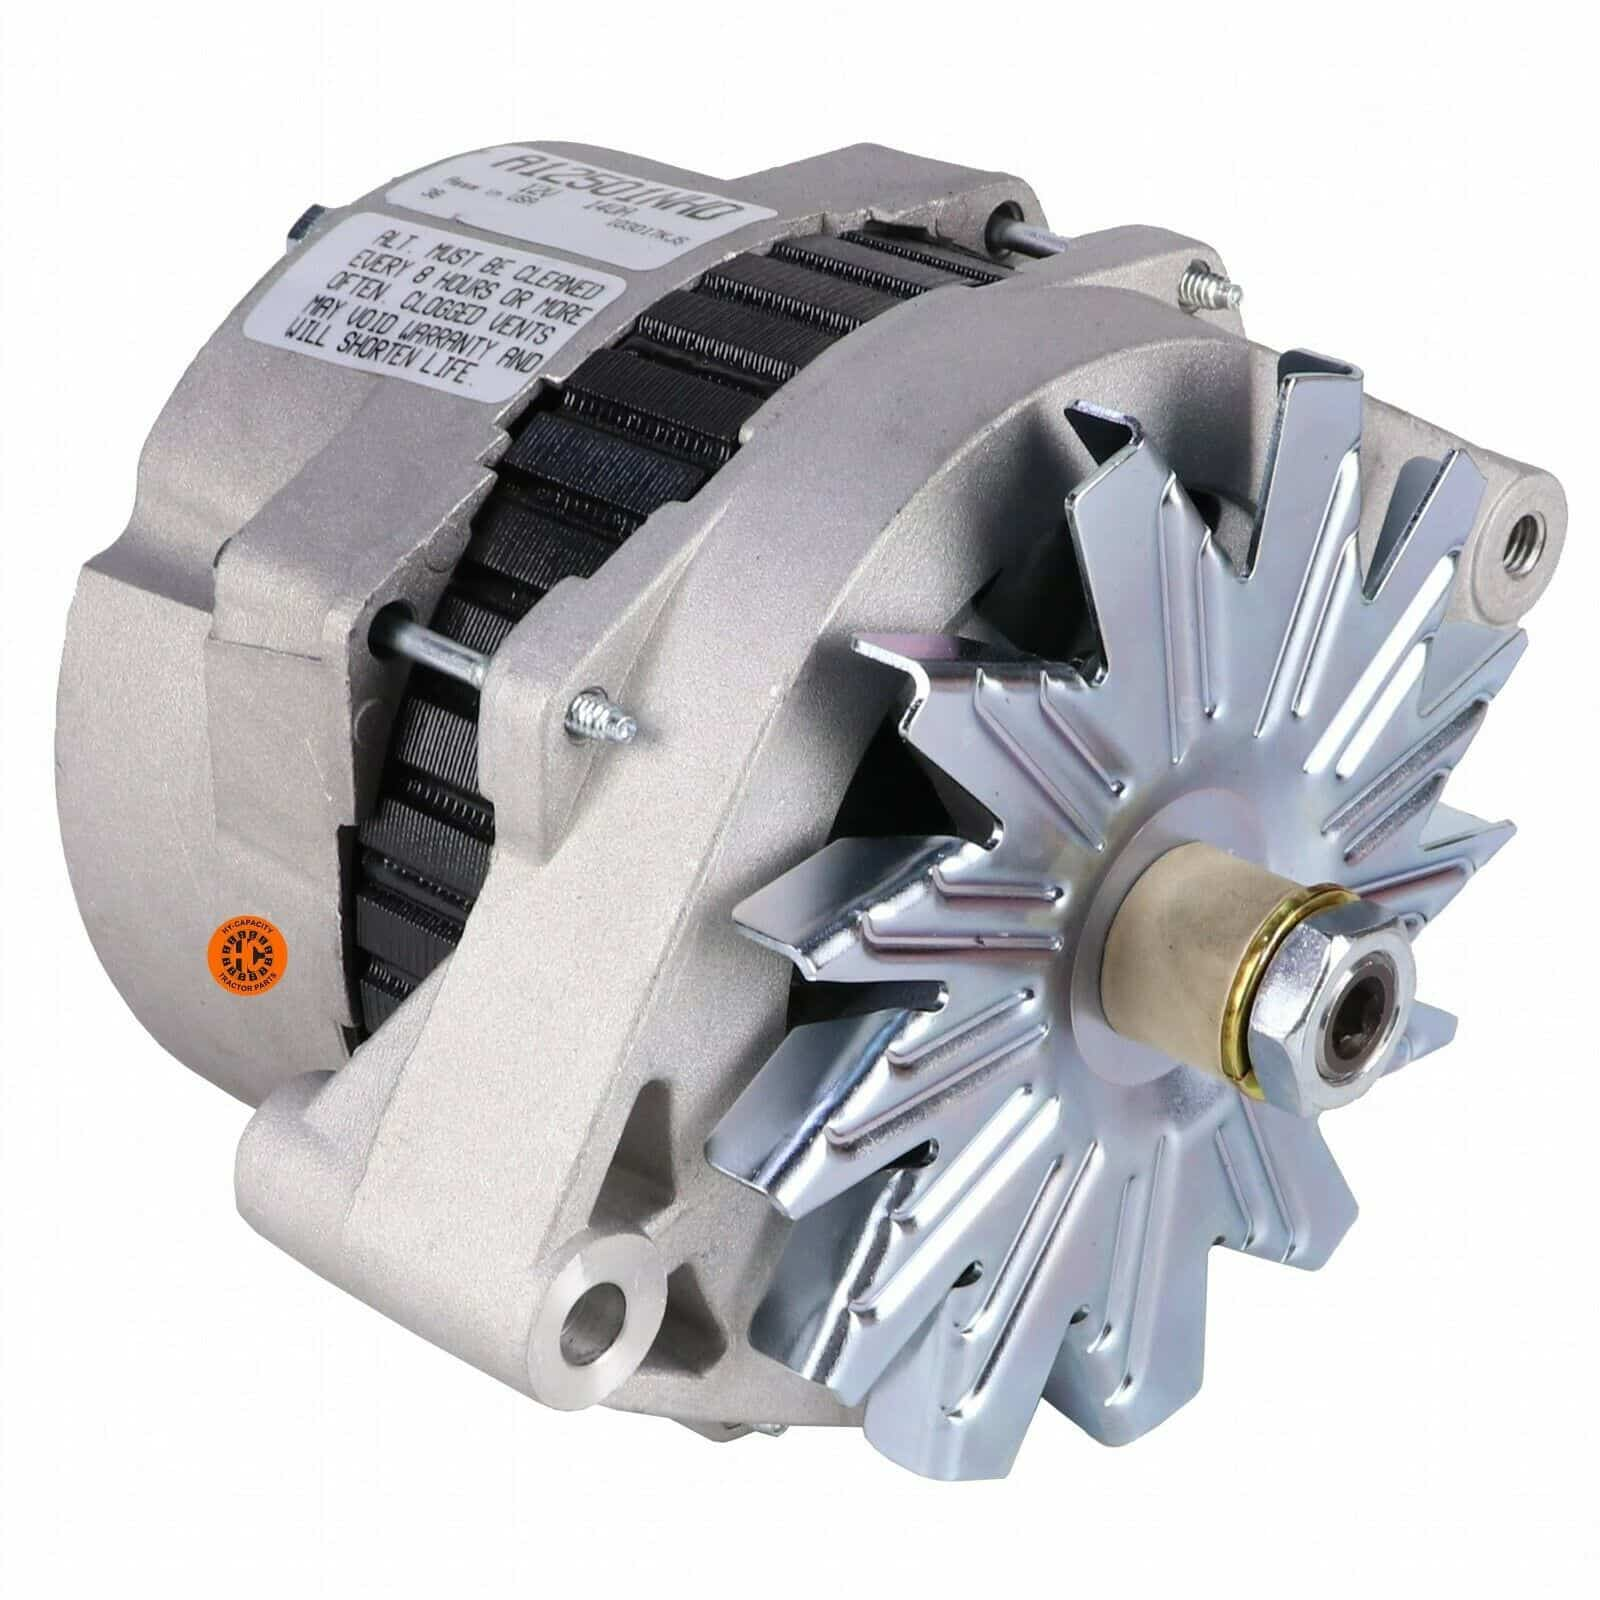 case-ih-windrower-alternator-new-v-a-si-aftermarket-delco-remy